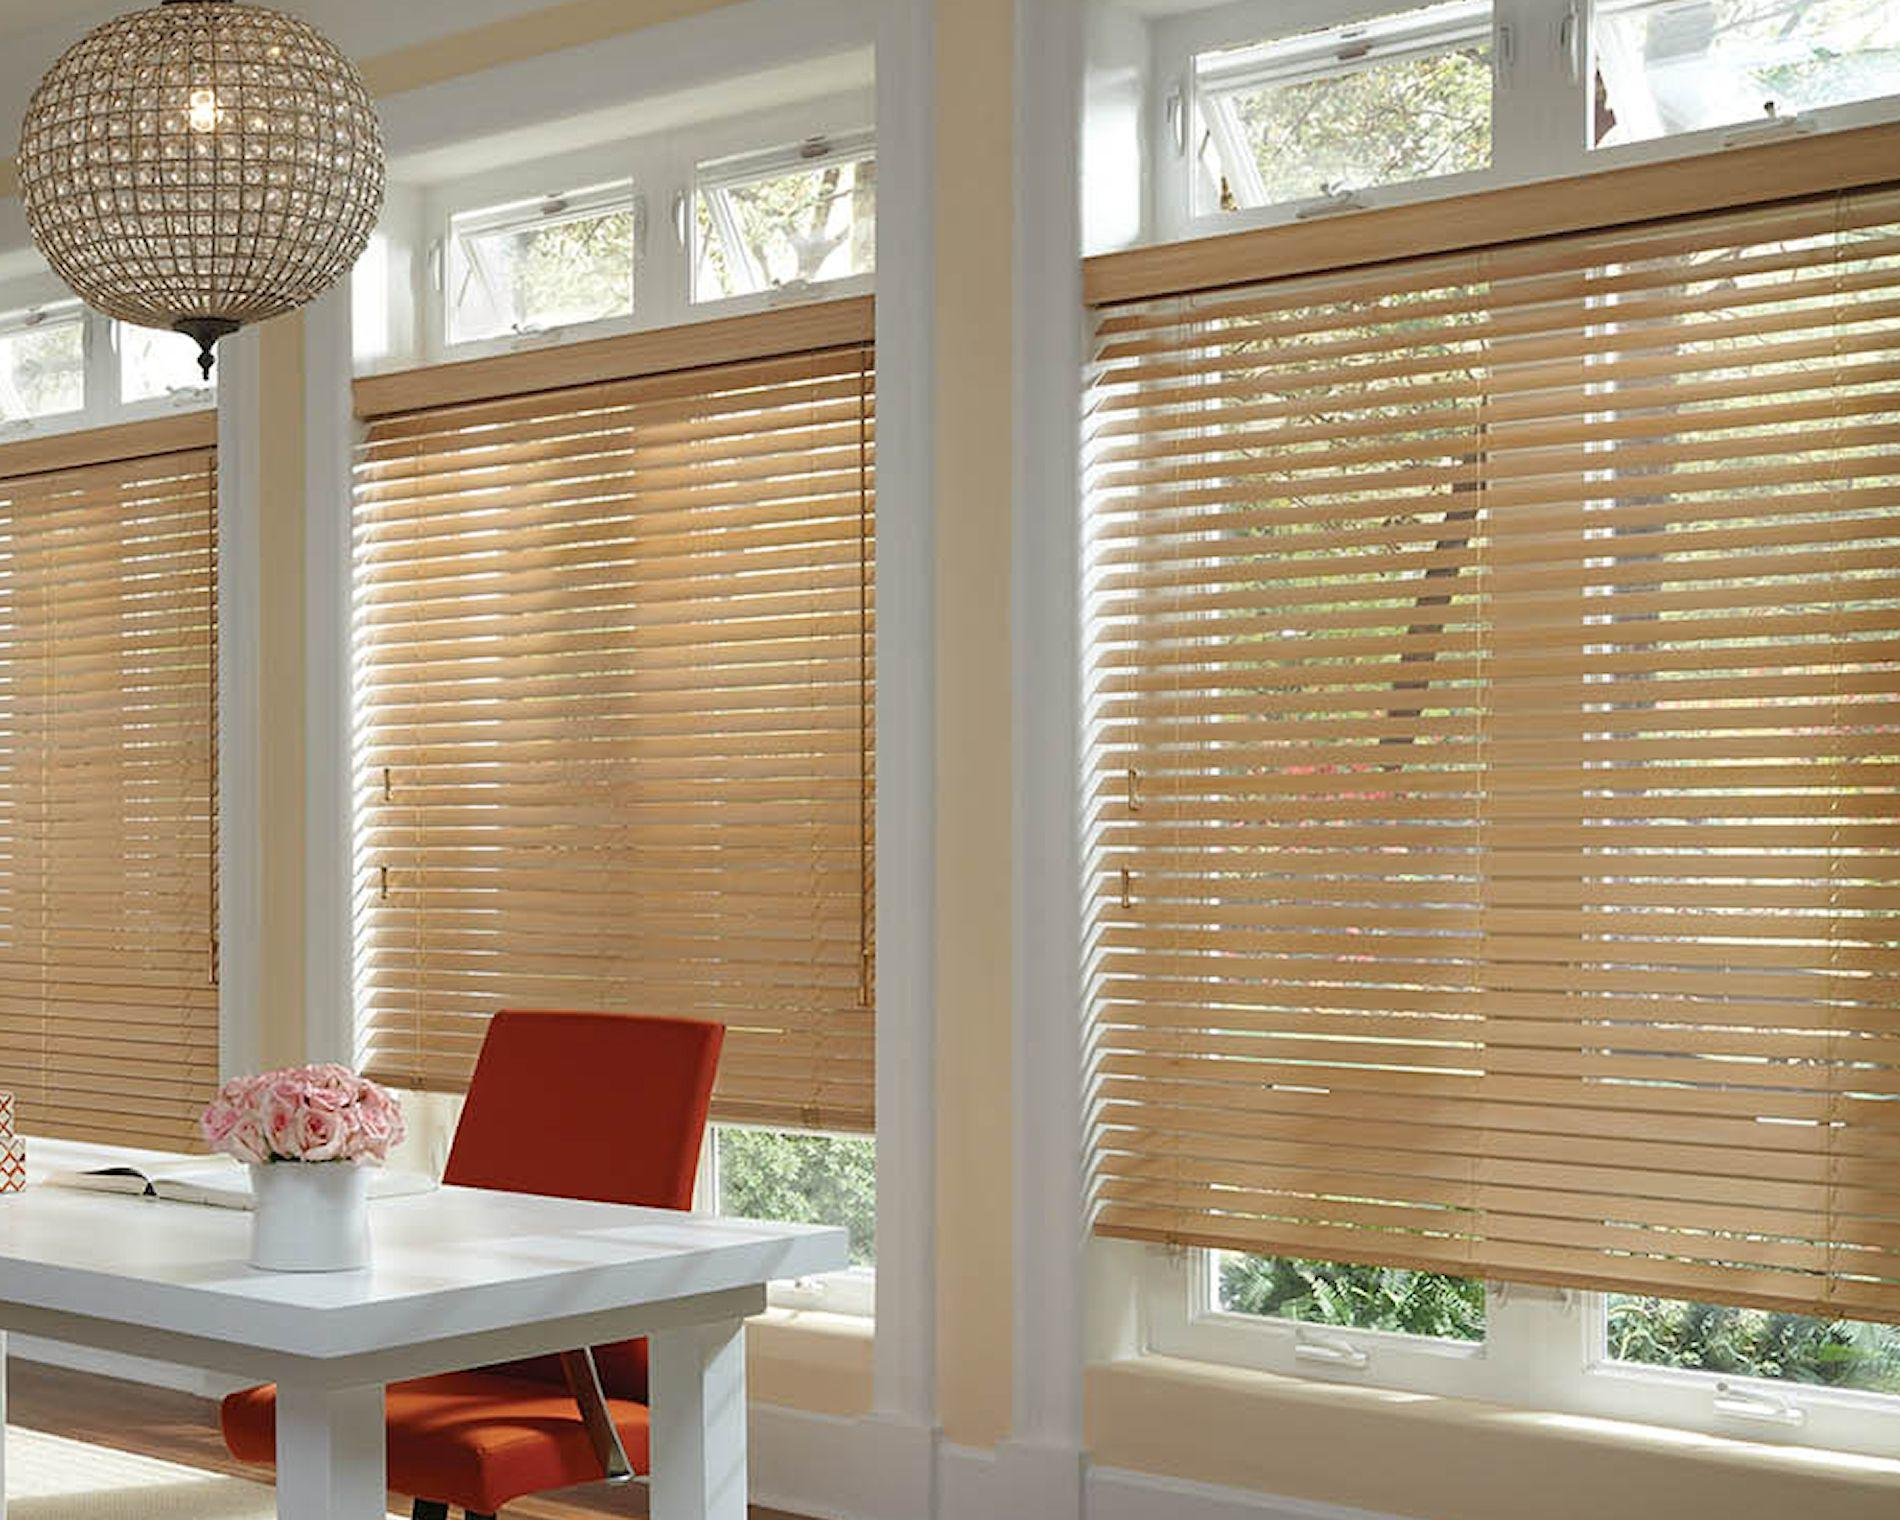 window treatments at htm blinds lifestyles tulsa coverings